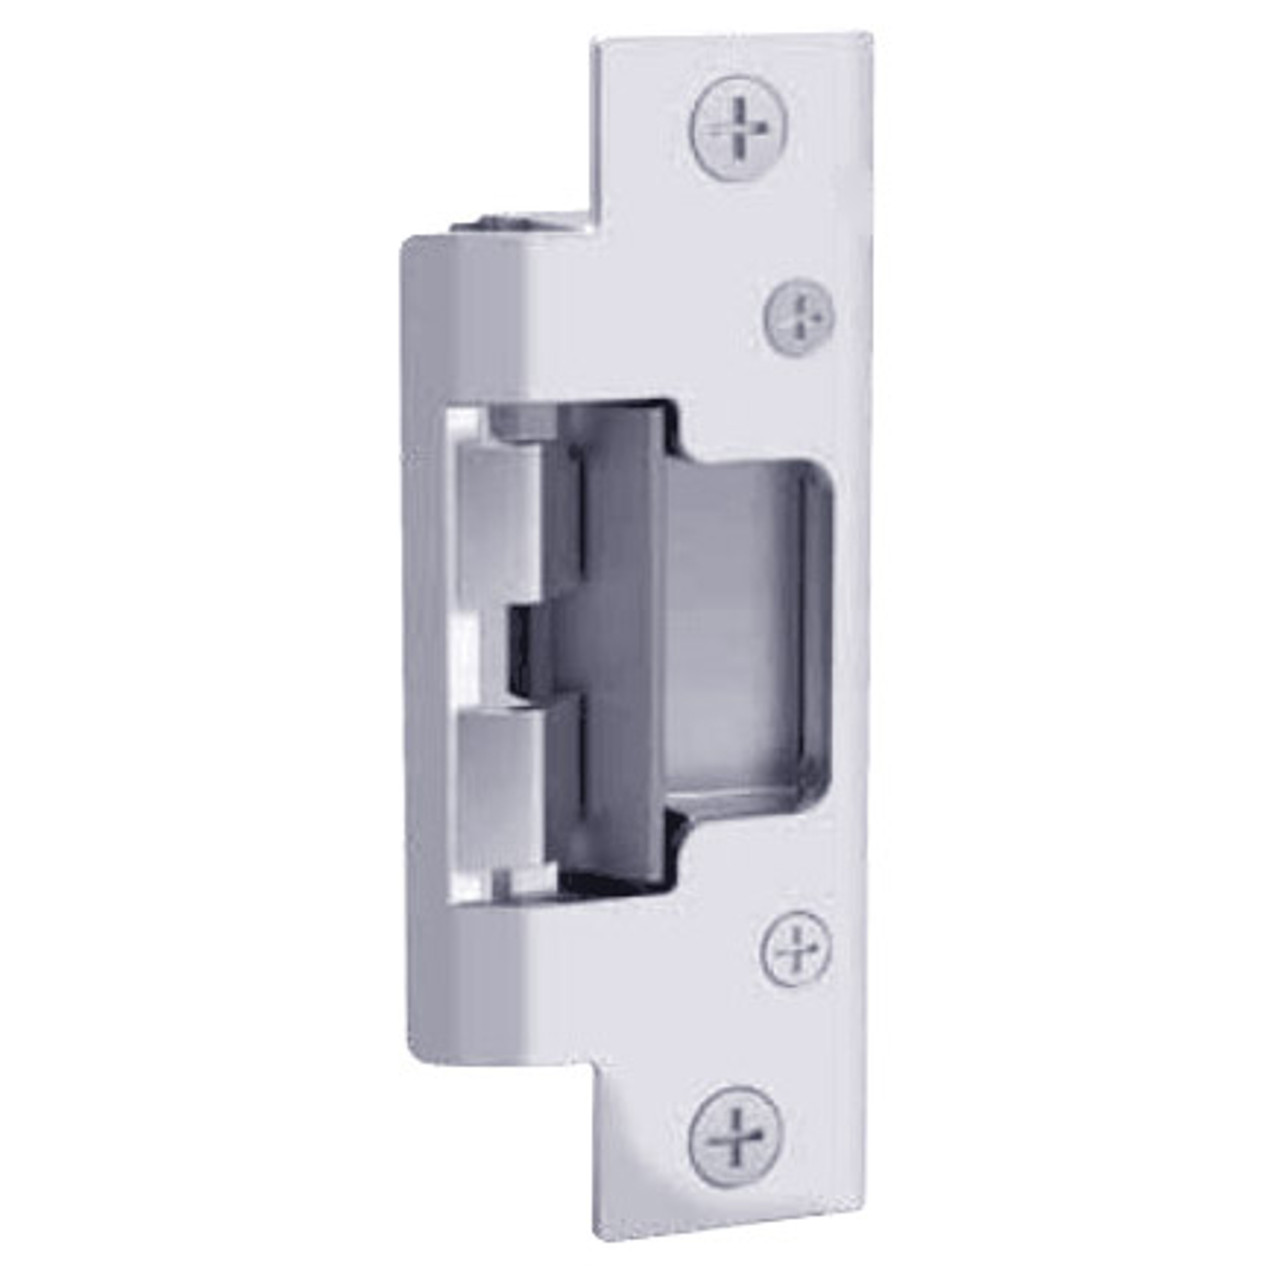 """801-629 Hes 4-7/8"""" x 1-1/4"""" Faceplate in Bright Stainless Steel Finish"""